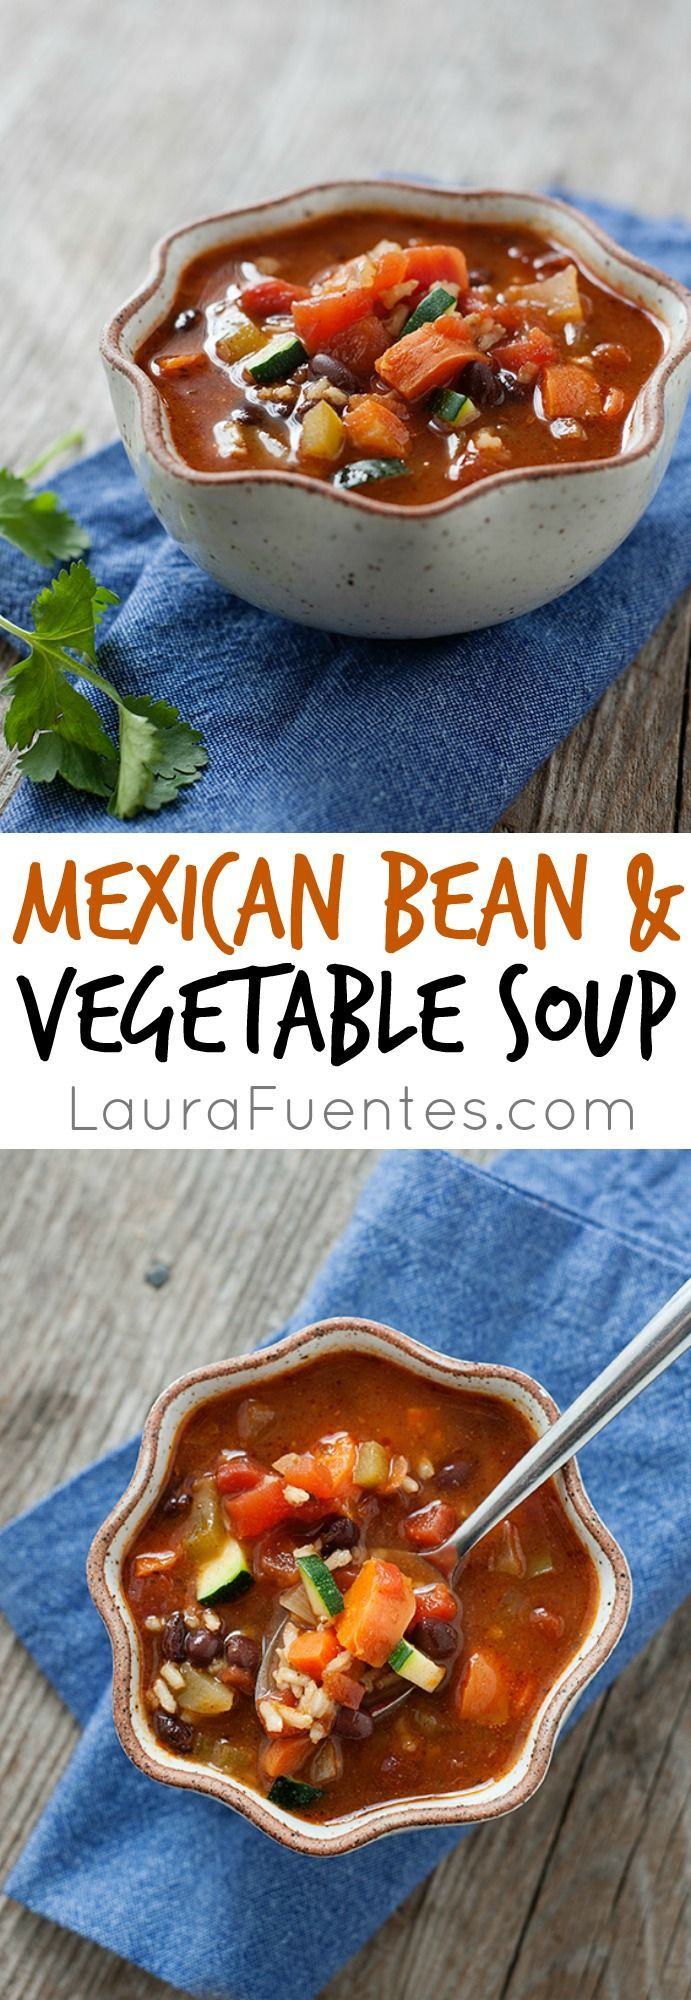 This delicious Mexican Bean and Vegetable Soup makes a great midweek meal. The…